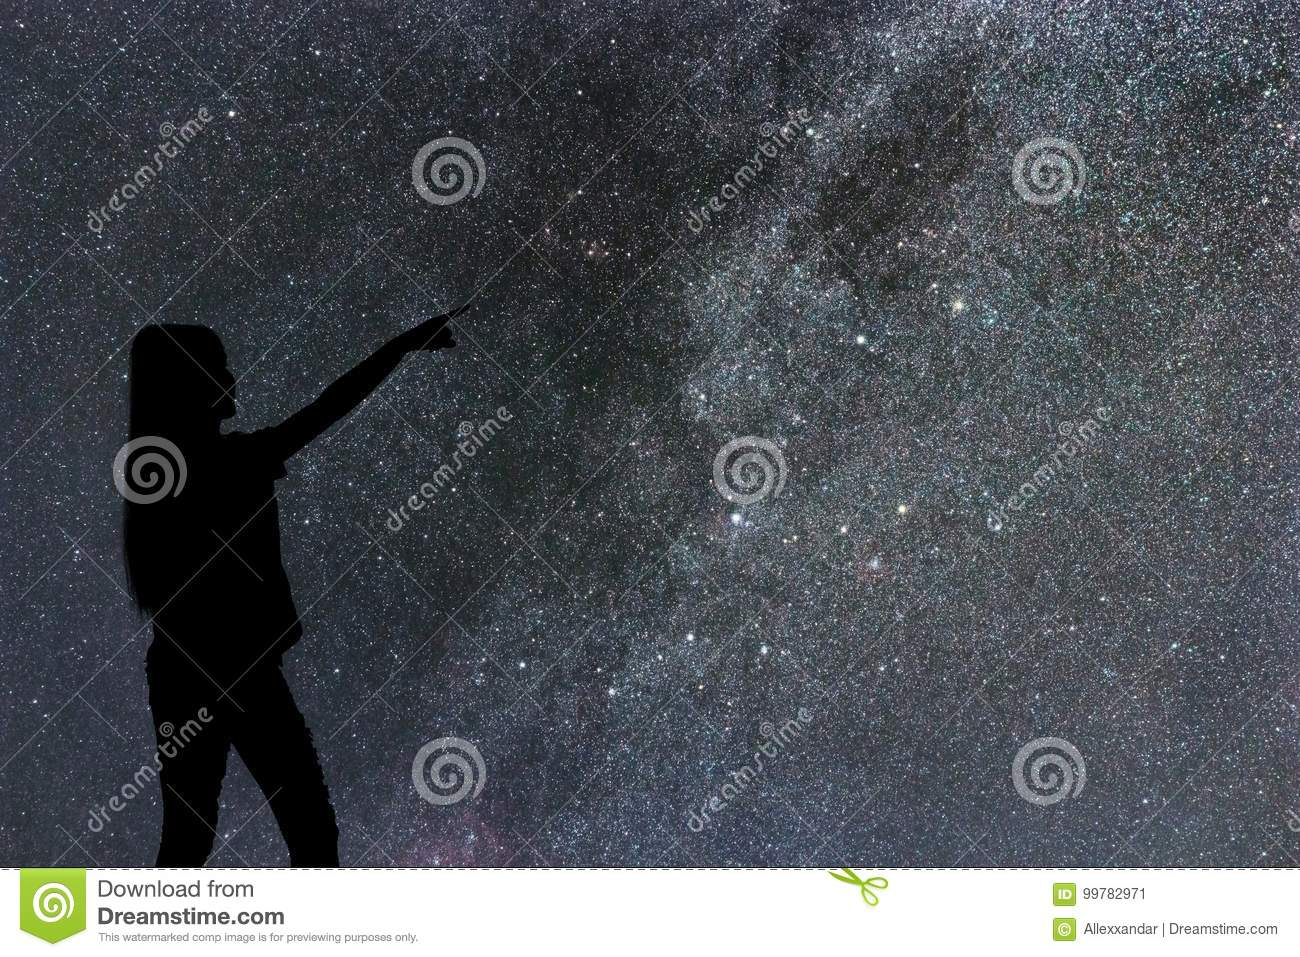 Silhouette of woman stand alone in the night milky way and stars